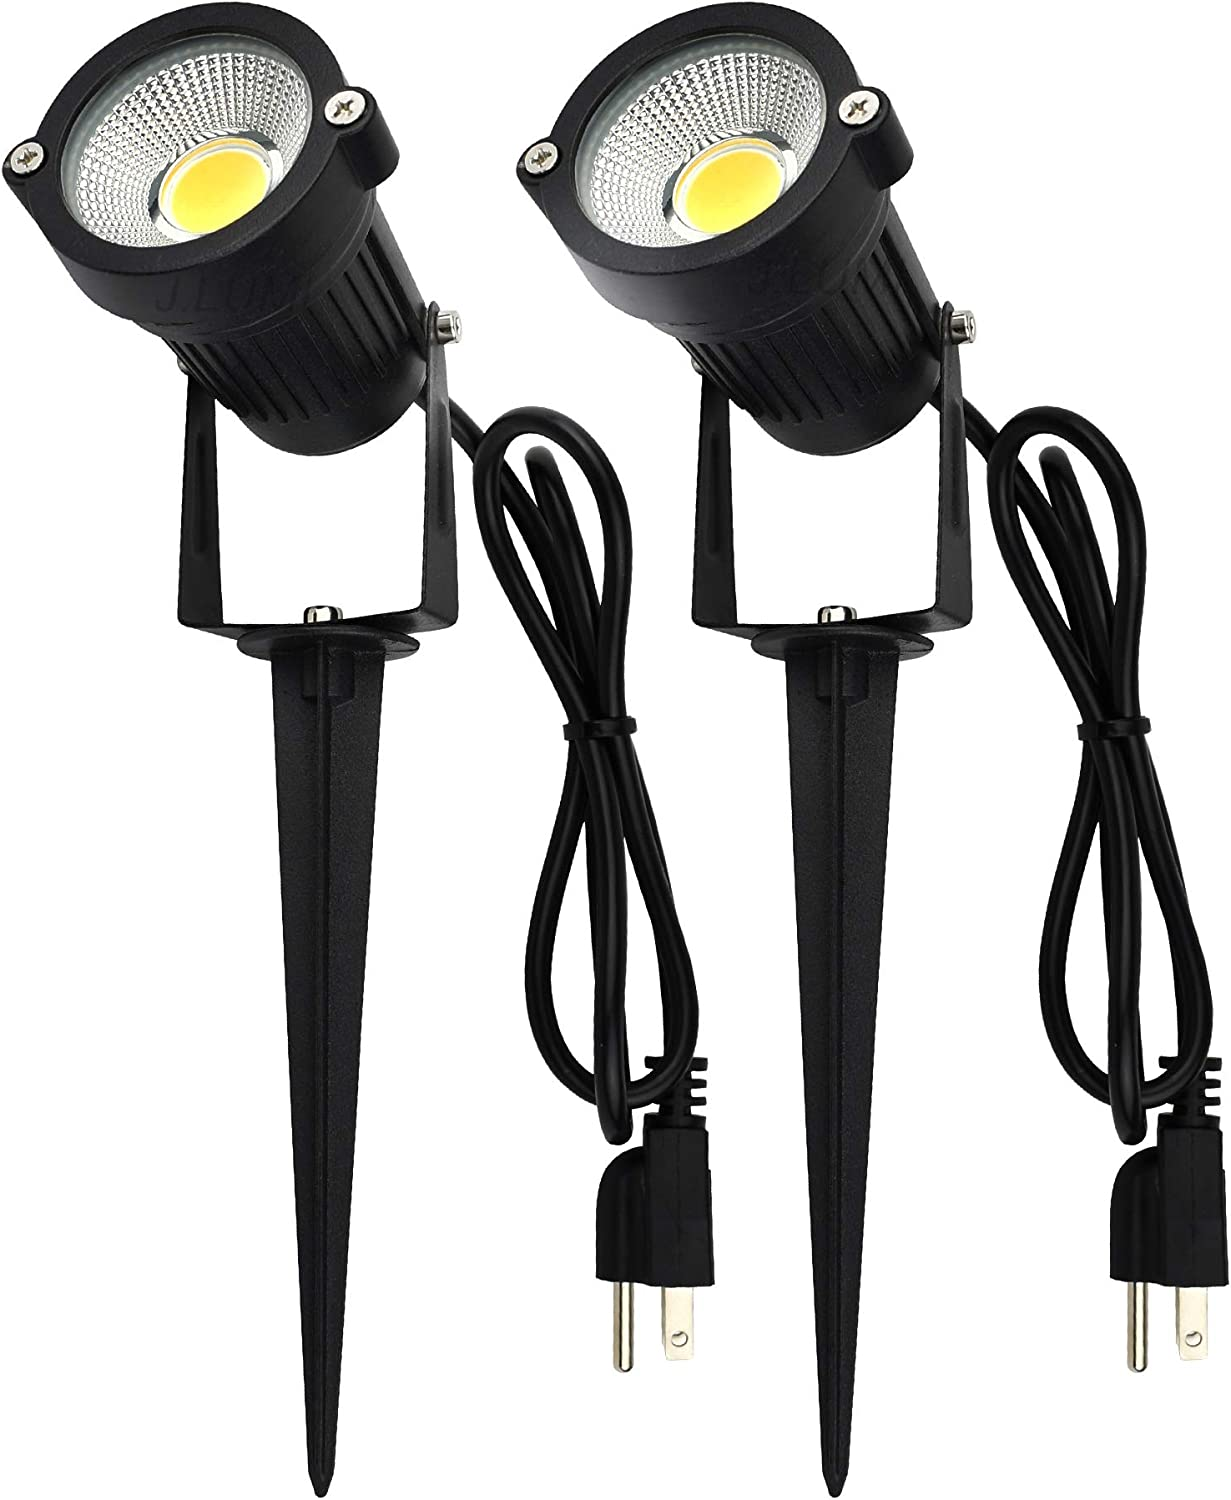 J.LUMI GSS6005 Outdoor LED Spotlights 5W, 120V AC, 3000K Warm White, Outdoor Use, Metal Ground Stake, Flag Light, Outdoor Spotlight with Stake, UL Cord 3-ft with Plug (Pack of 2): Home Improvement